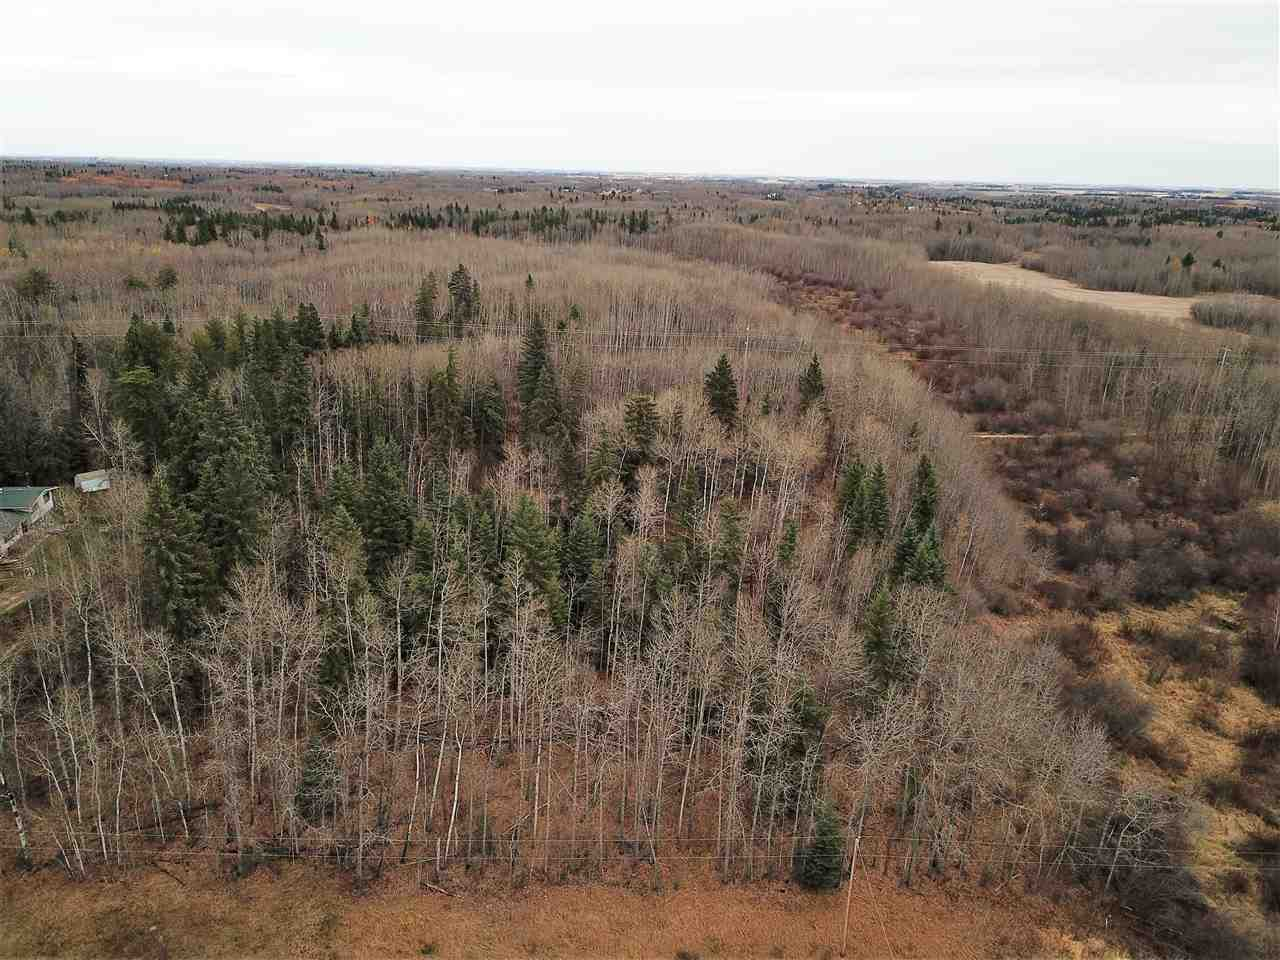 SITUATED in the gorgeous setting of Banksiana Ranch in Parkland County is this stunning parcel of land. A rare opportunity to build your dream home awaits you and your family. This level 3.11 acre lot is nicely treed and backs the brand new Devonian Trail that connects to Prospector Point and the Devonian Gardens to enjoy those long family walks. Fantastic location being a short drive to Devon, The Edmonton International Airport, and Edmonton.